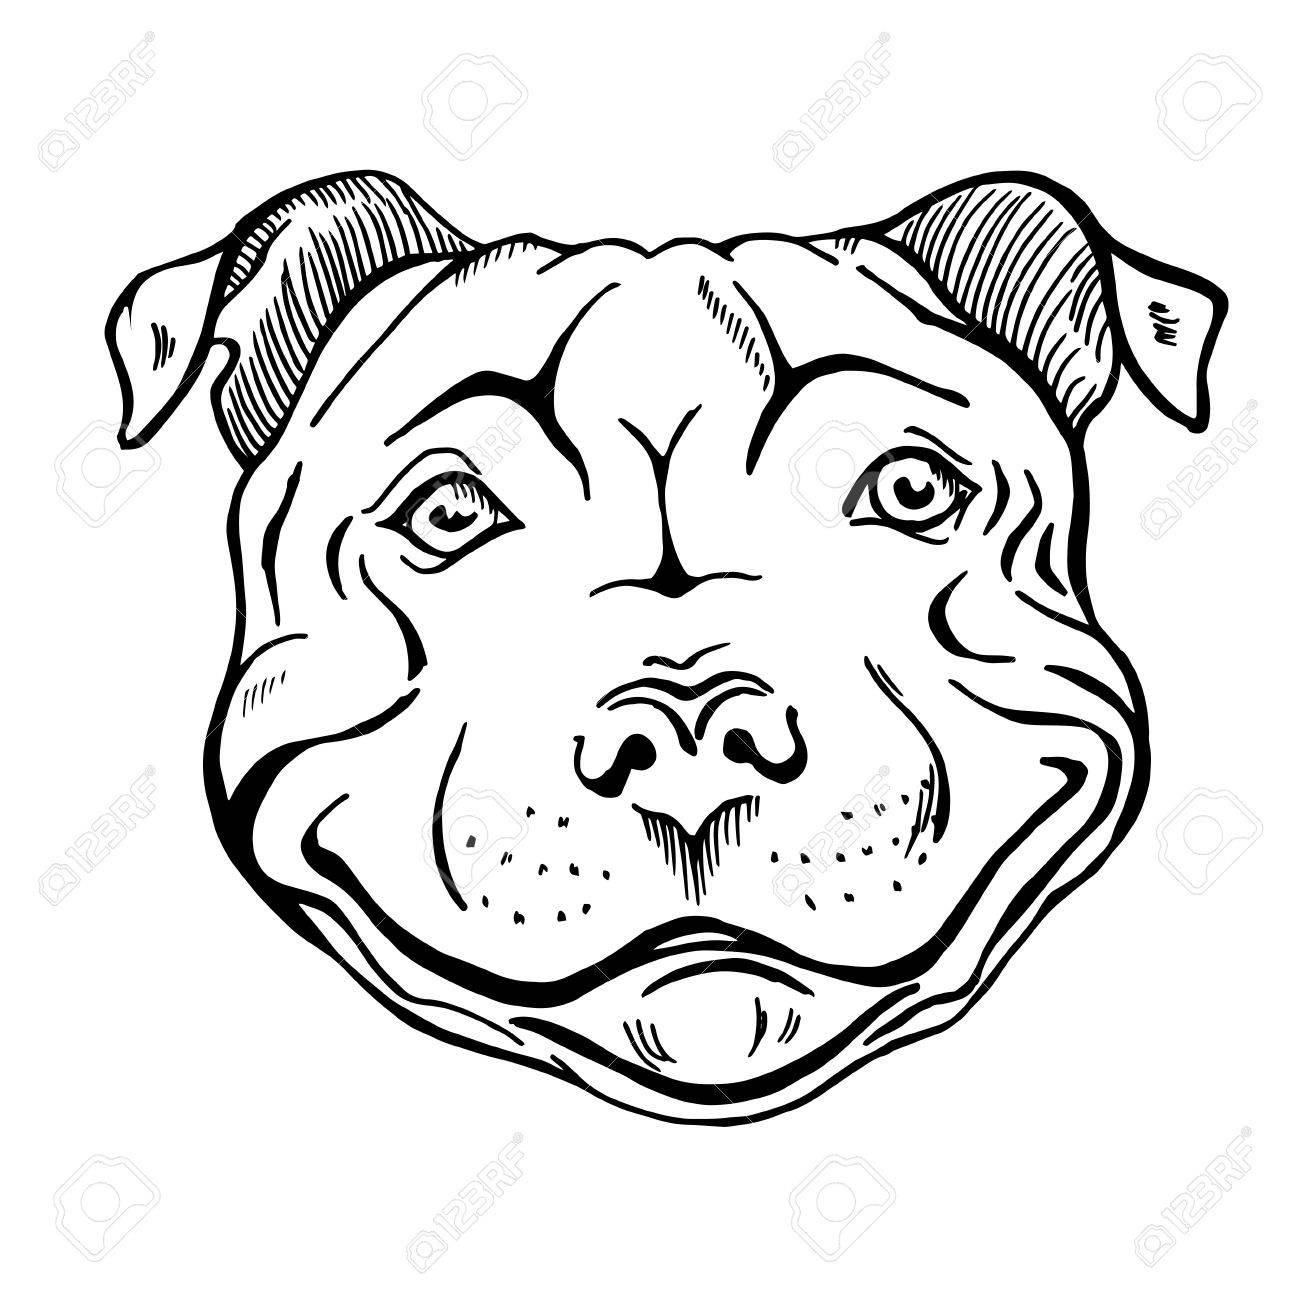 1300x1300 Pit Bull, Smiling Dog Face, Portrait, Sketch, Black And White